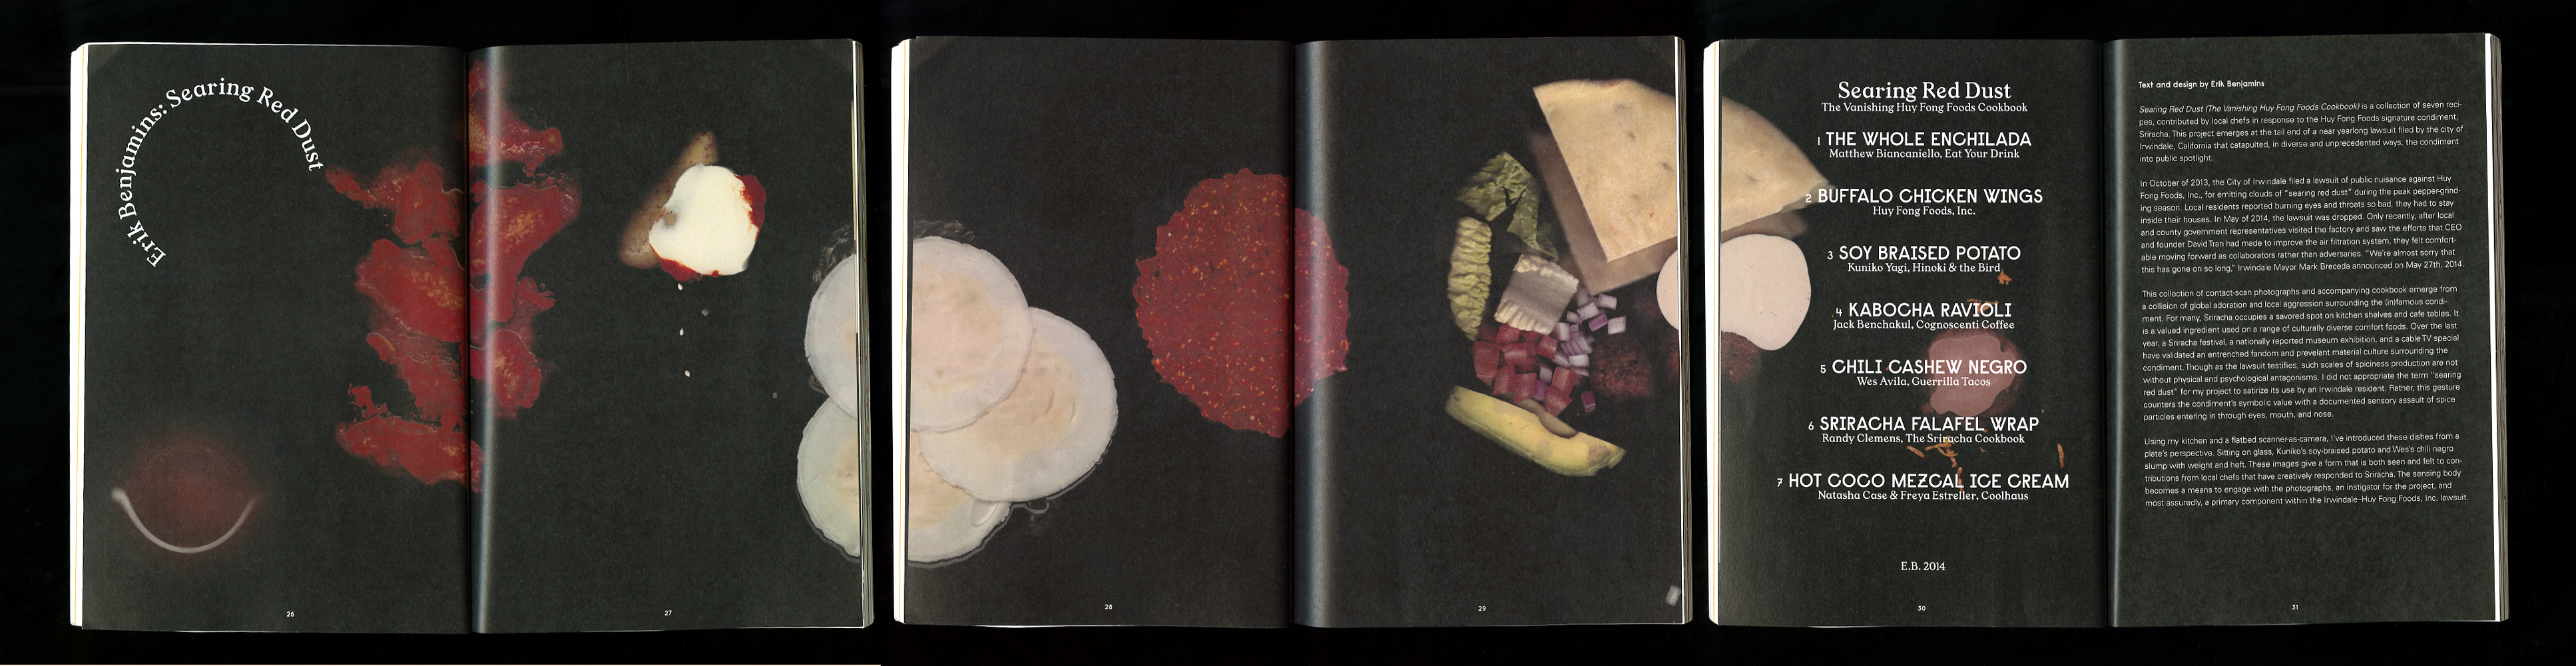 Searing Red Dust (The Vanishing Huy Fong Foods Cookbook), 2014